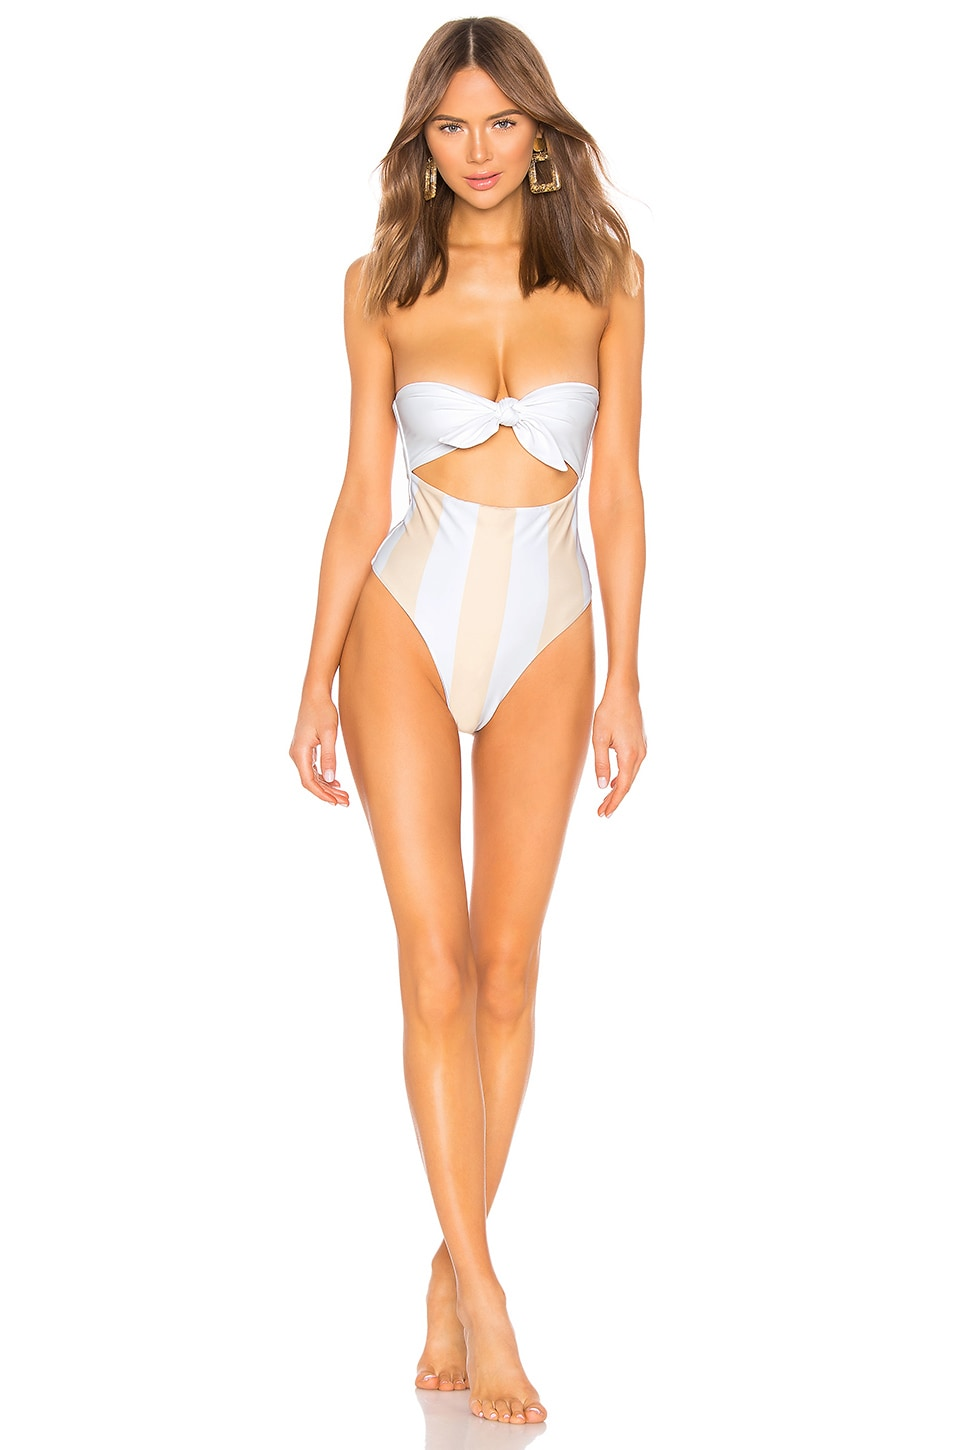 lolli swim Top Knot One Piece in Skinny Dip